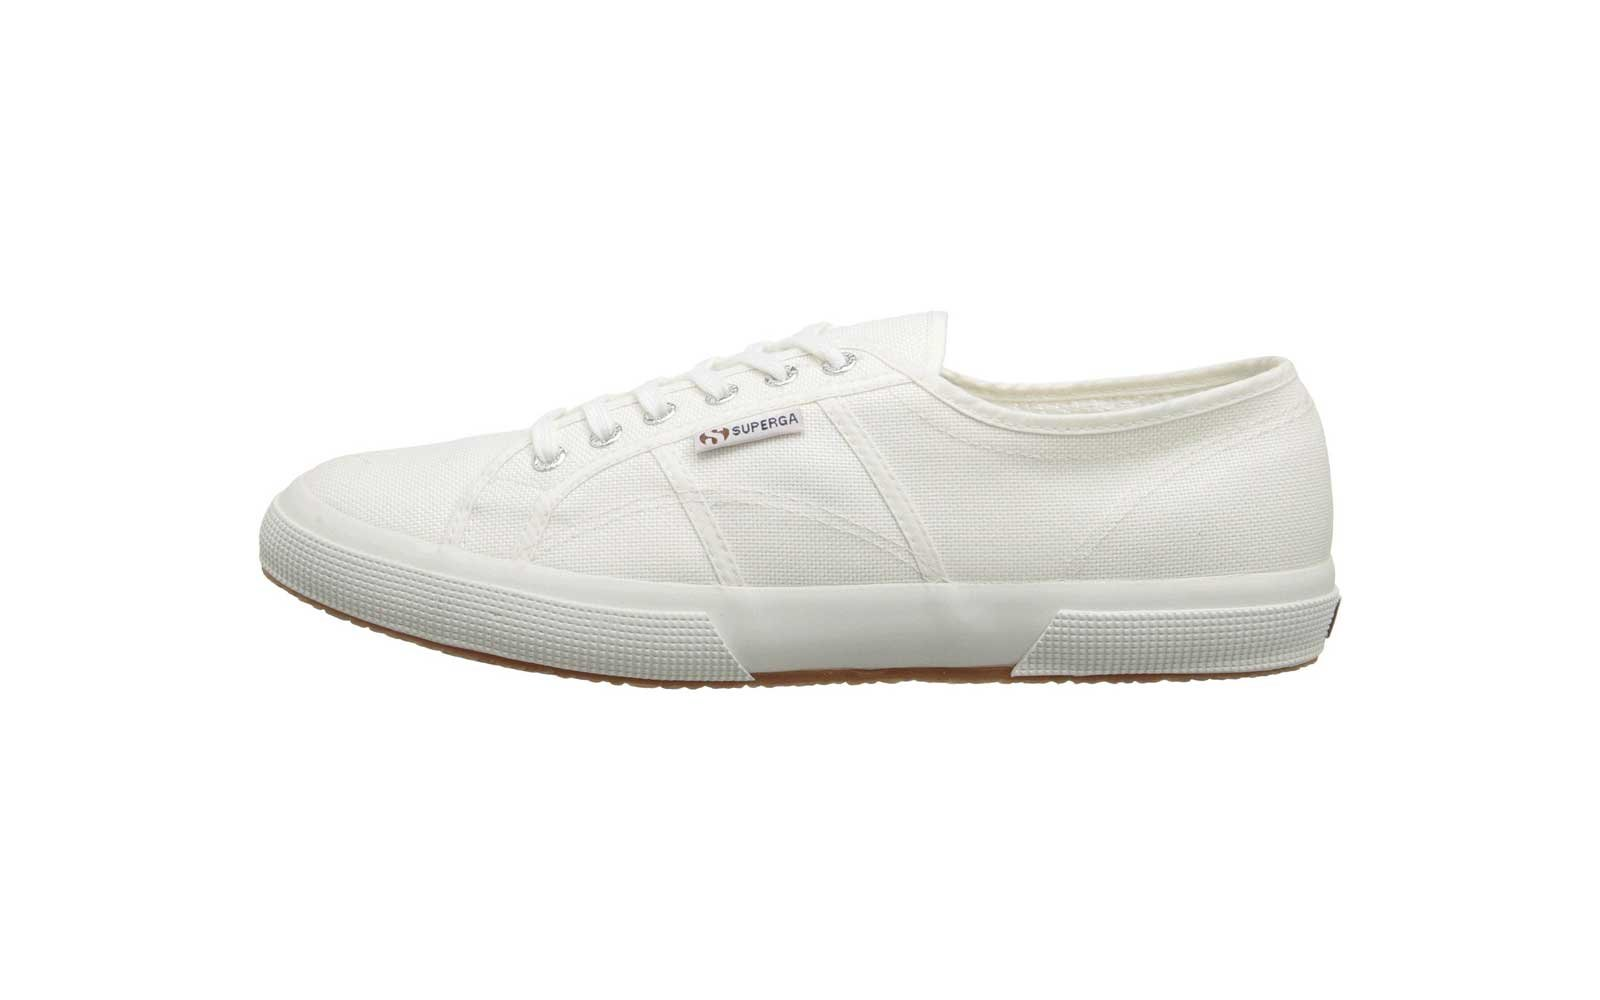 09ba187ae For the Simple Shoe Lover  Superga  Cotu  Sneaker. The Best Comfy and Cute  ...